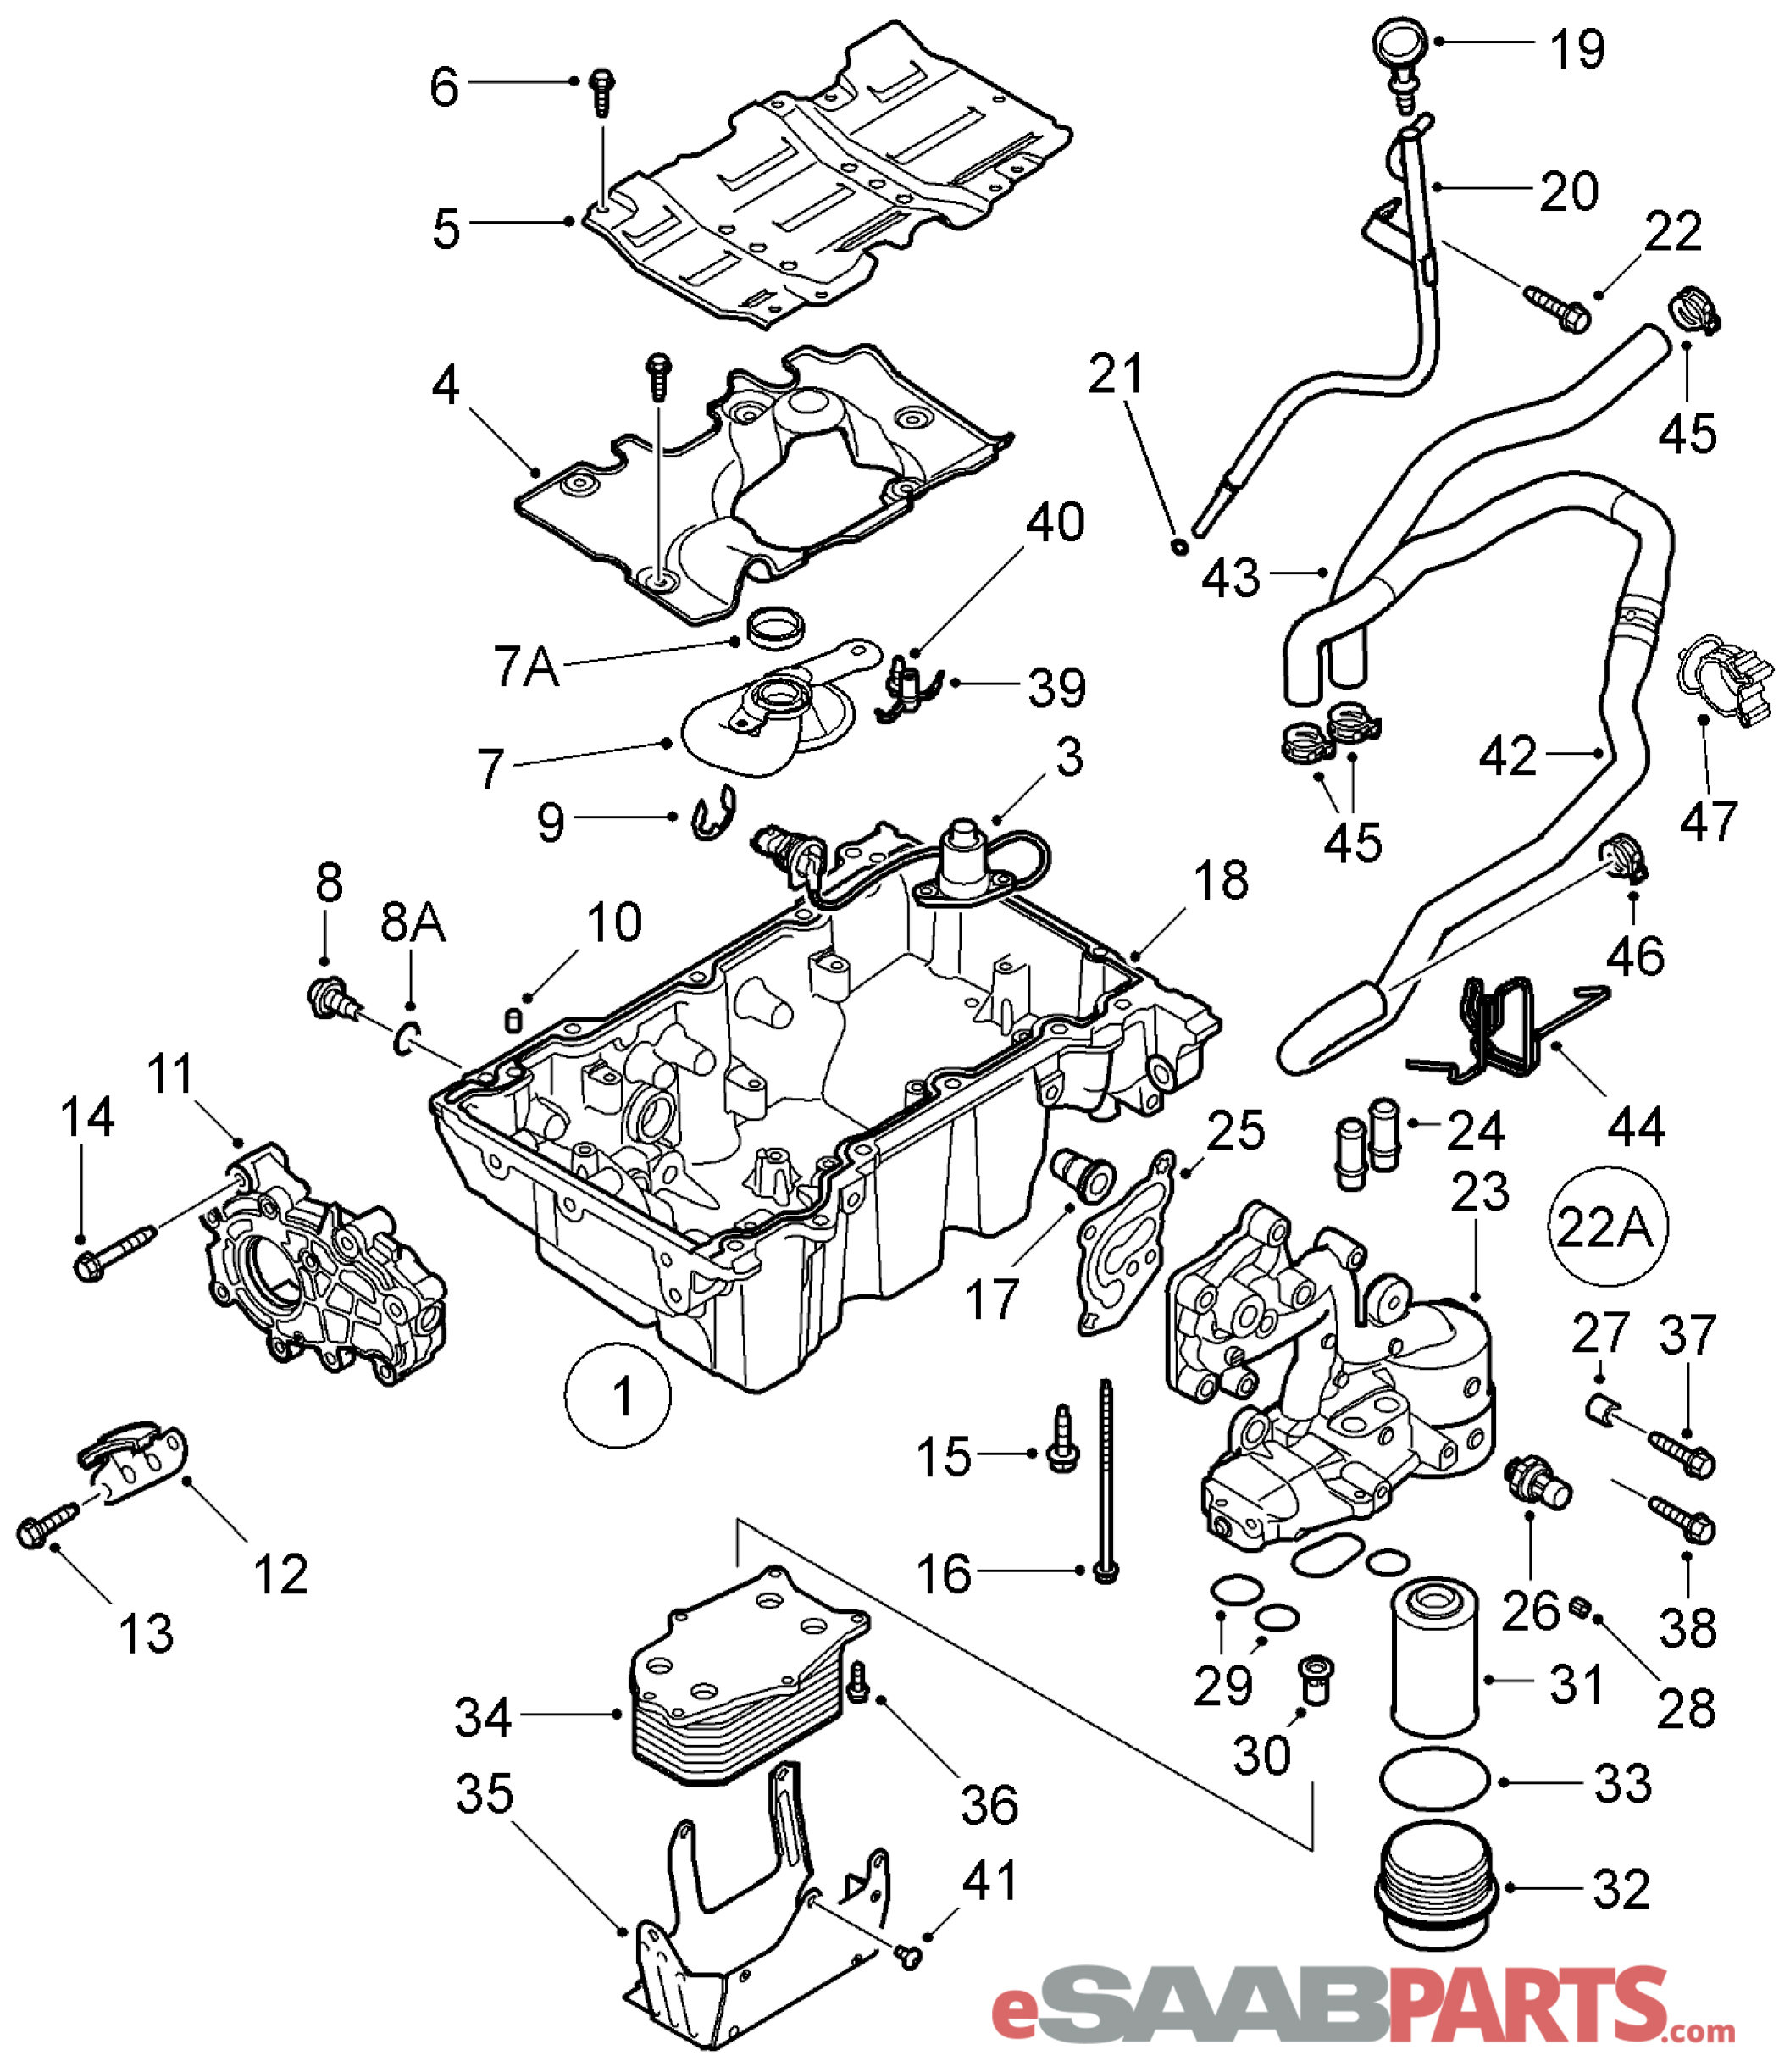 11562588 saab oil drain plug genuine saab parts from esaabparts rh esaabparts oil well casing diagram oil change diagram